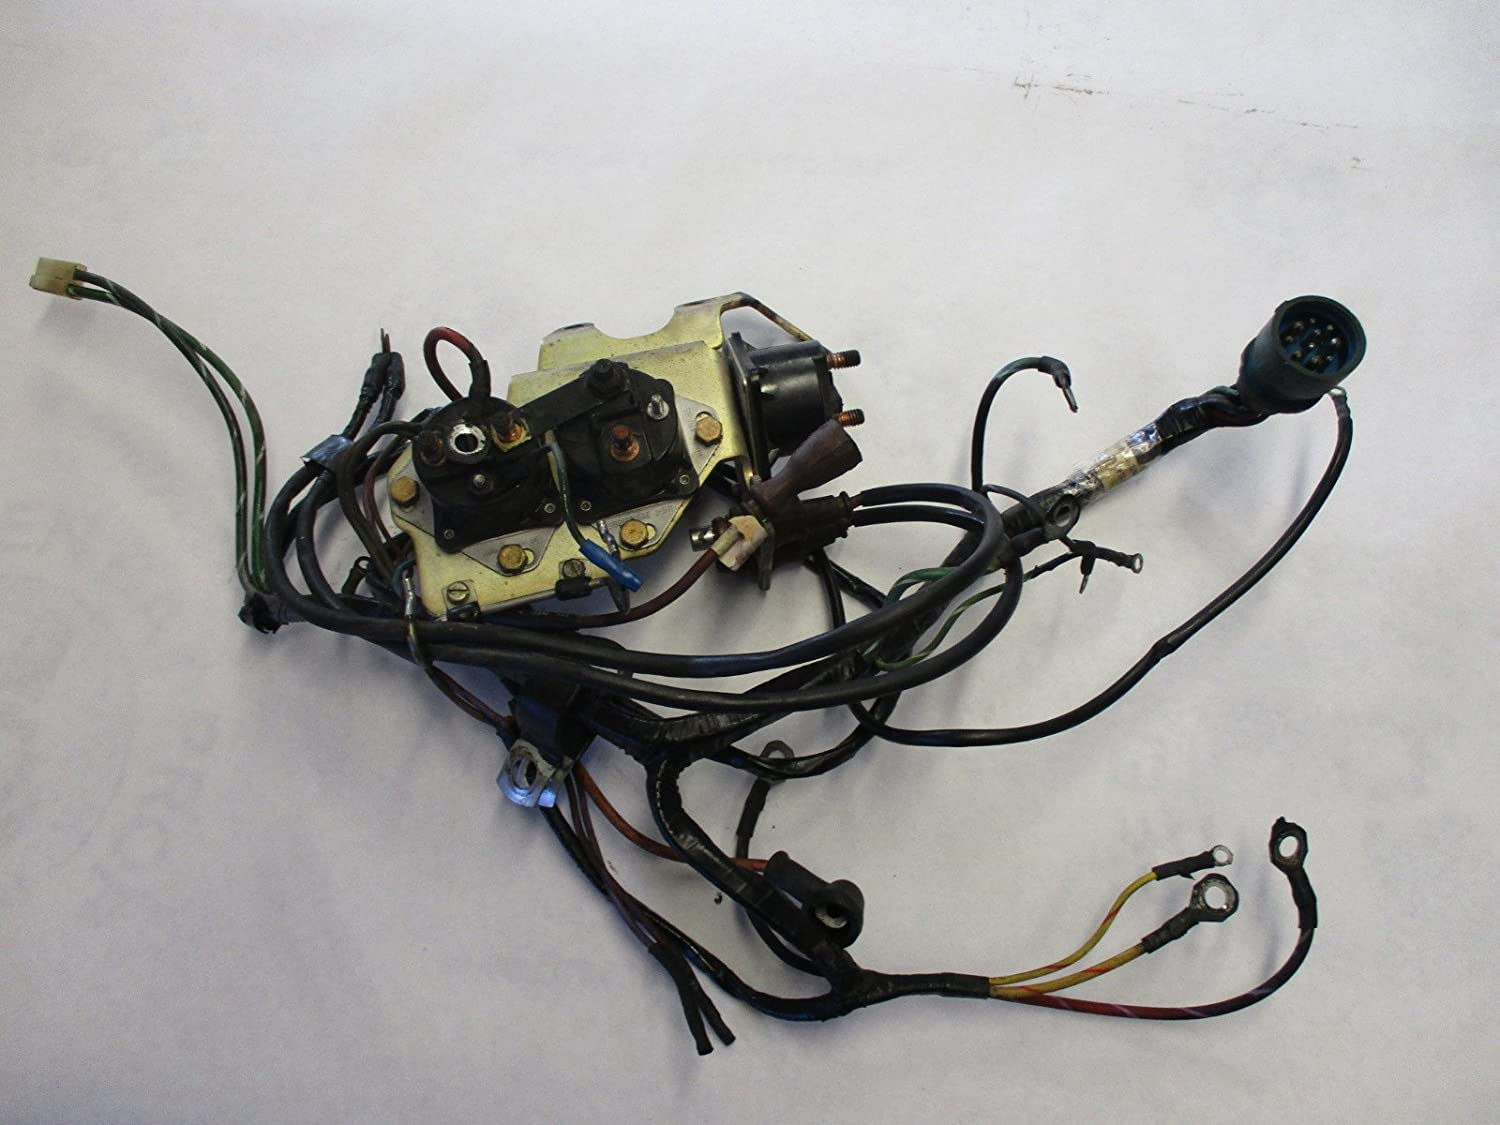 0983243 Chevy OMC Stringer V6 V8 Engine Wire Harness cket ... on omc cobra parts diagram, omc neutral safety switch, omc fuel tank, omc remote control, omc control box, omc oil cooler, omc cobra outdrive, omc inboard outboard wiring diagrams, omc voltage regulator, omc gauges,